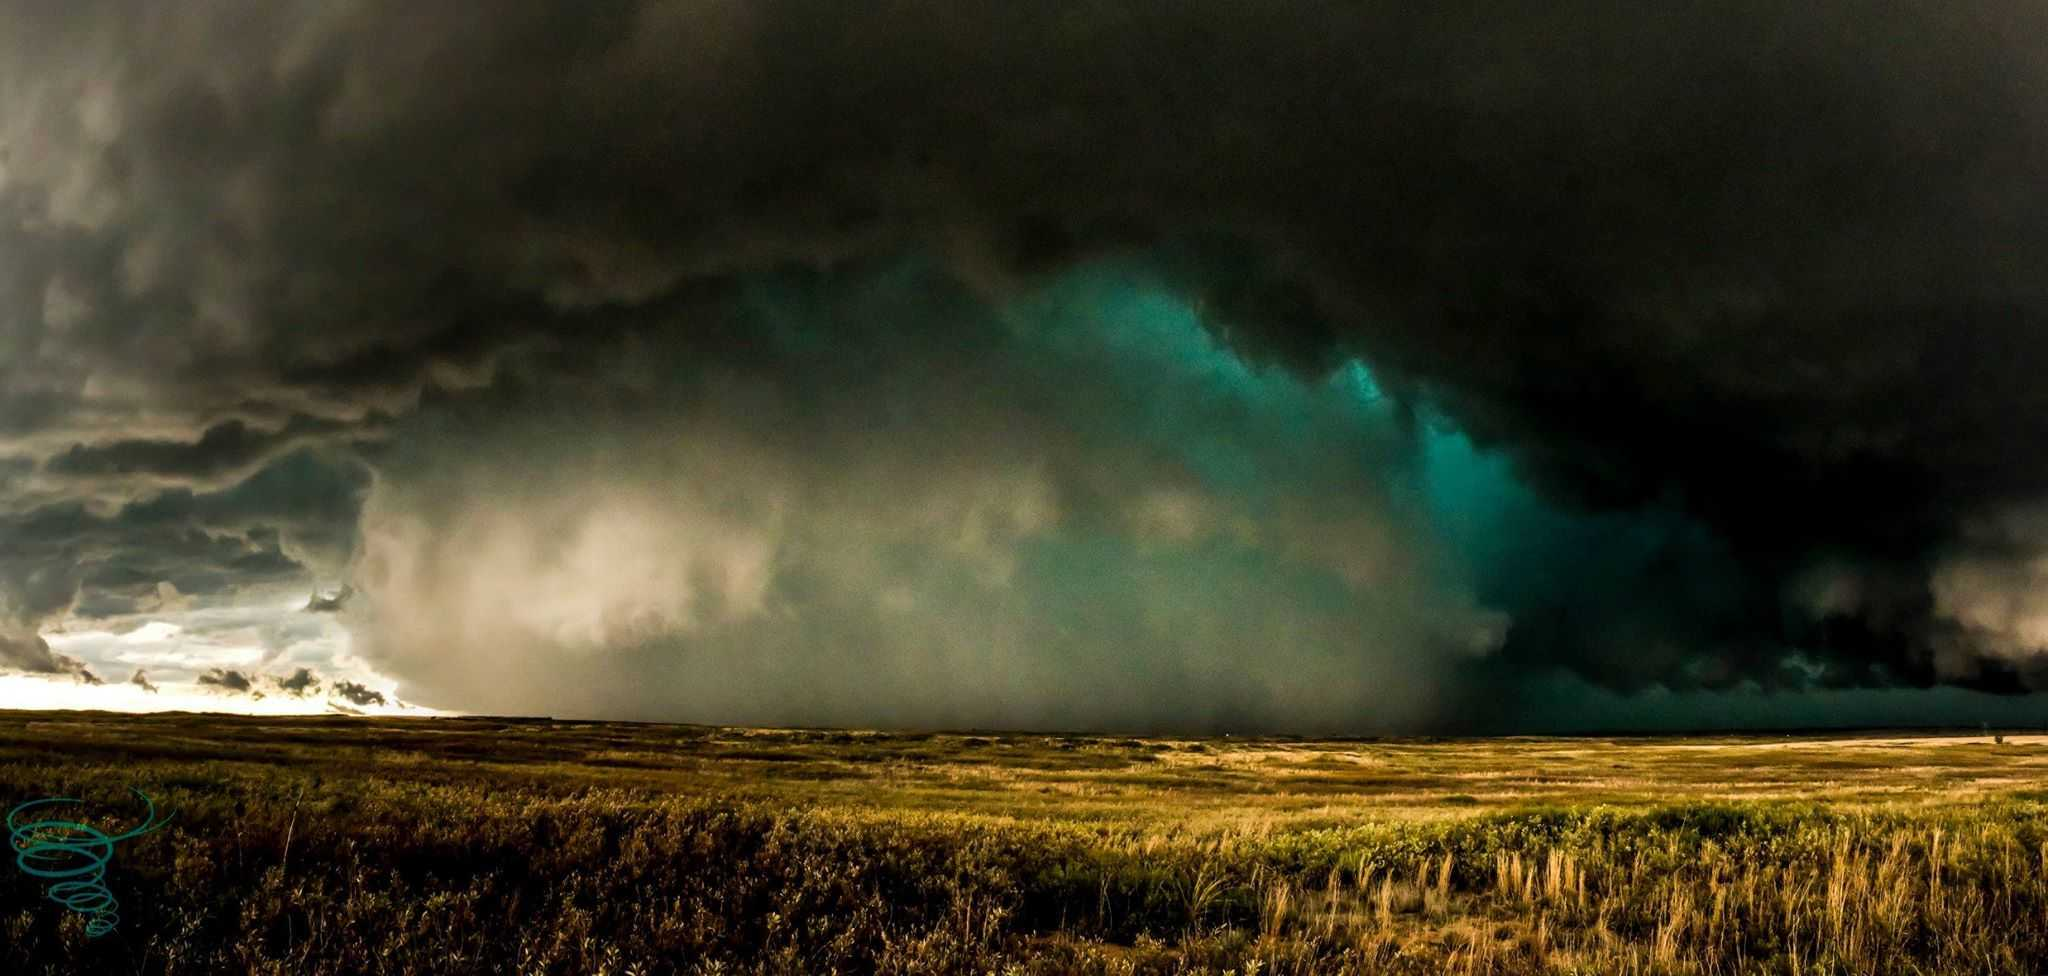 Tornado warned HP supercell near Kellerville, Texas on April 16, 2015. An EF0 tornado briefly made an appearance on the right side of the rain/hail shaft around the time of this photo.